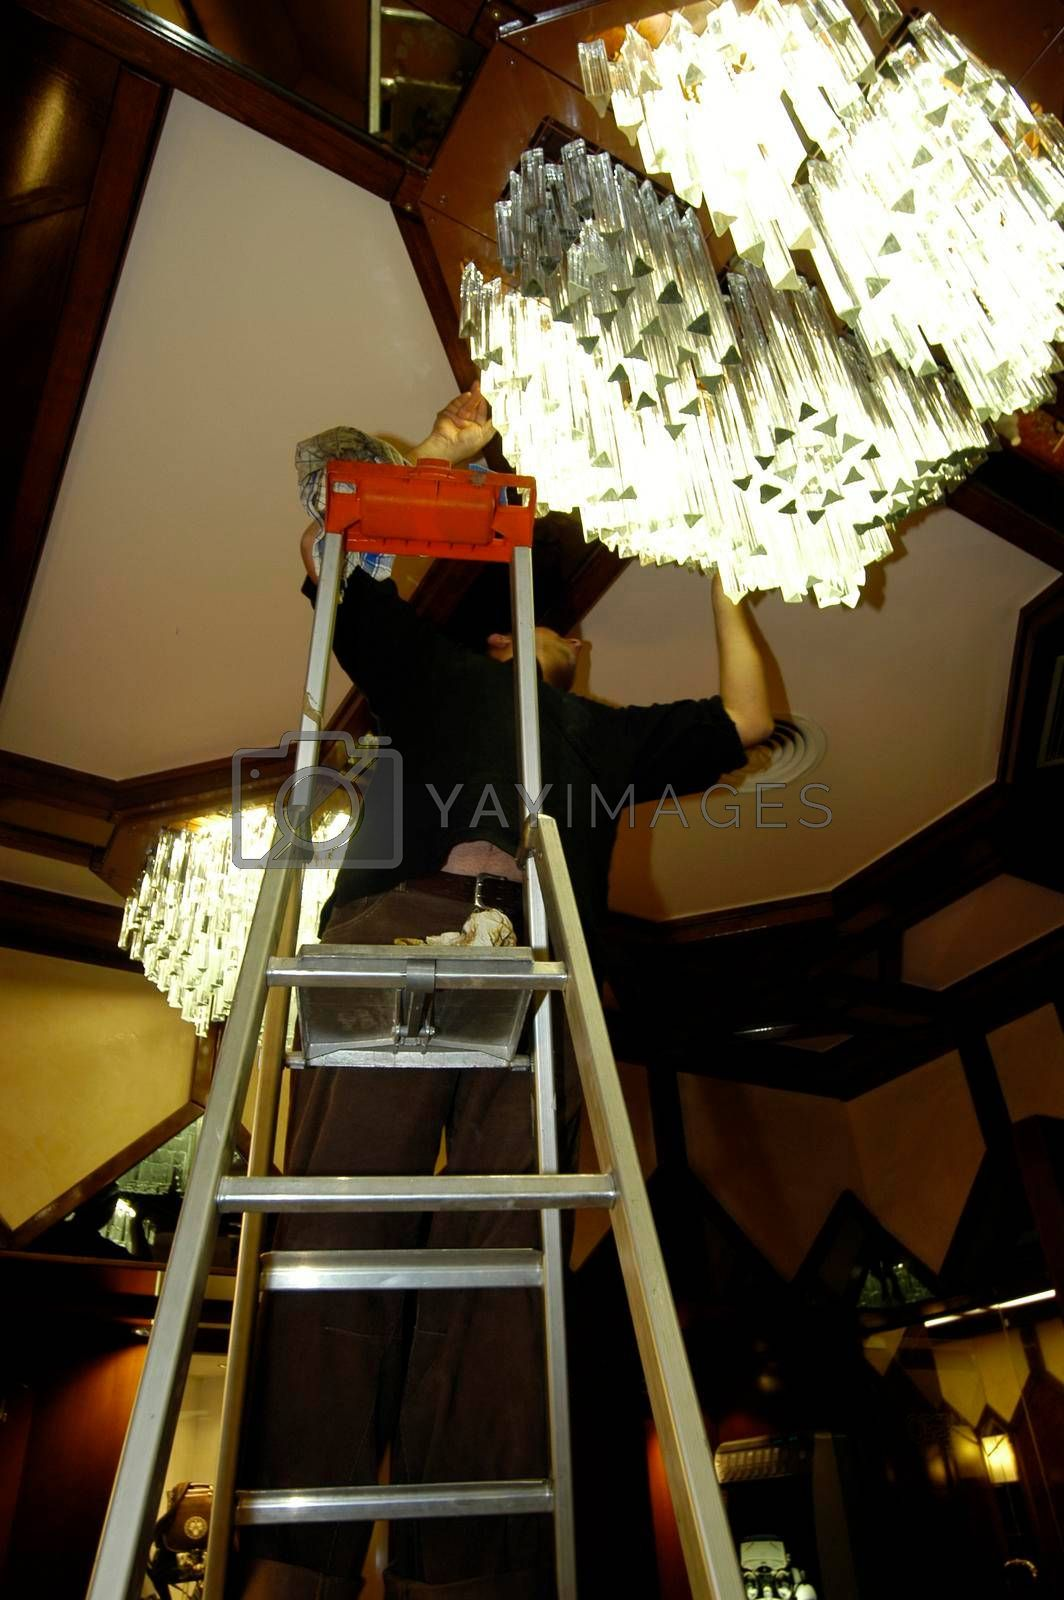 building cleaning and property management, professional cleaning and hygiene services